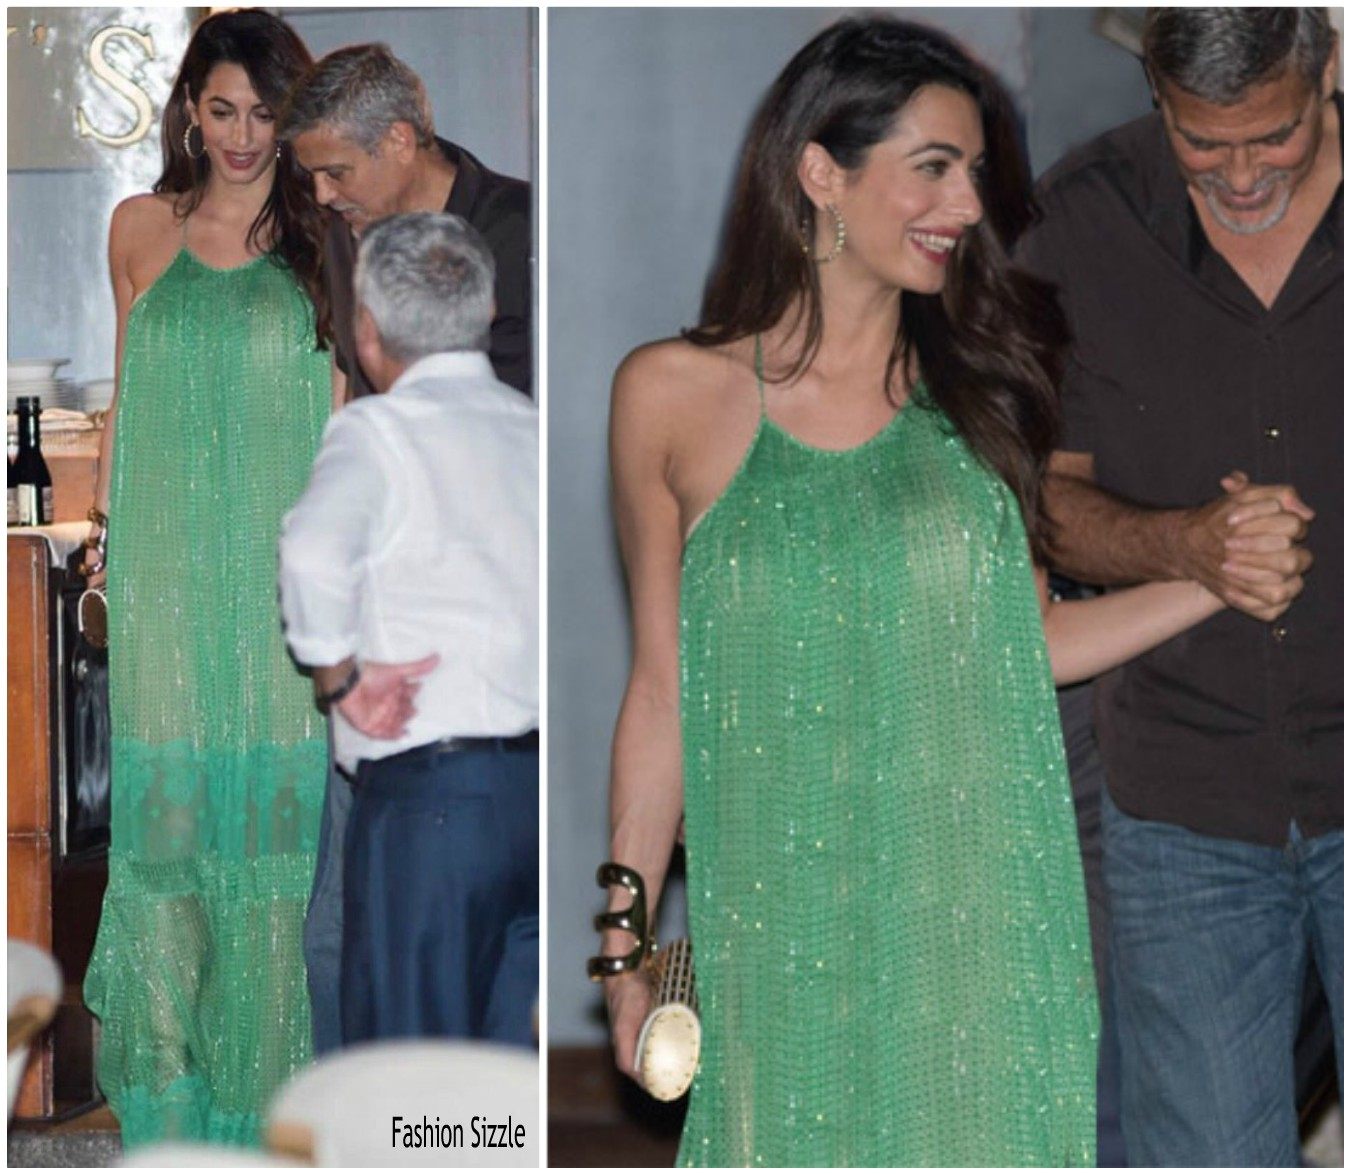 Amal Clooney In Stella McCartney gown in Italy - Fashionsizzle